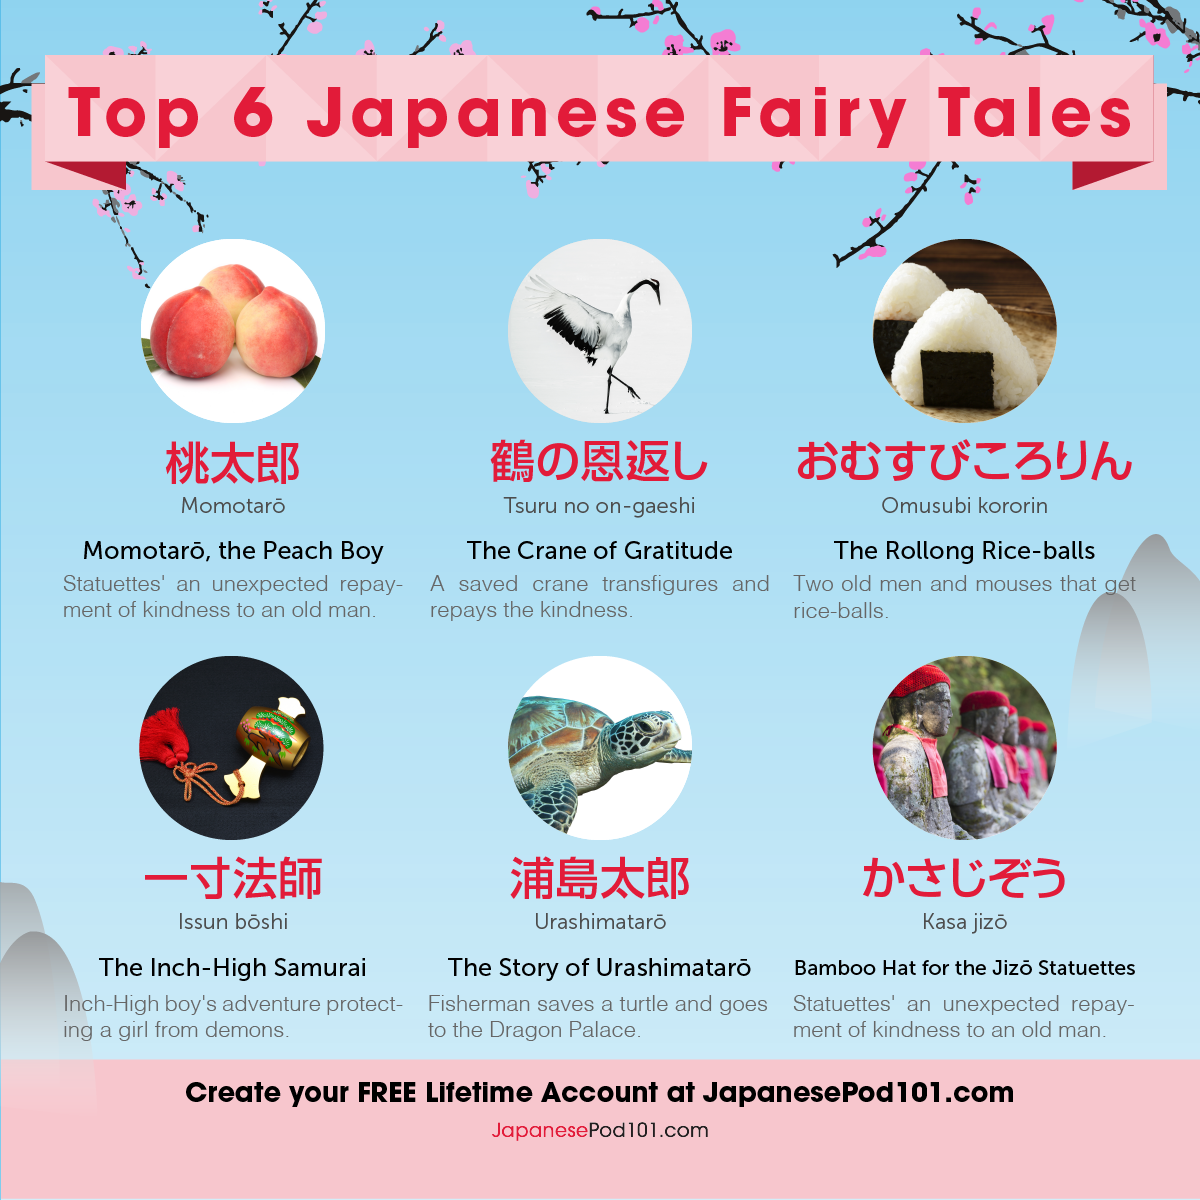 Top 6 Japanese Fairy Tales